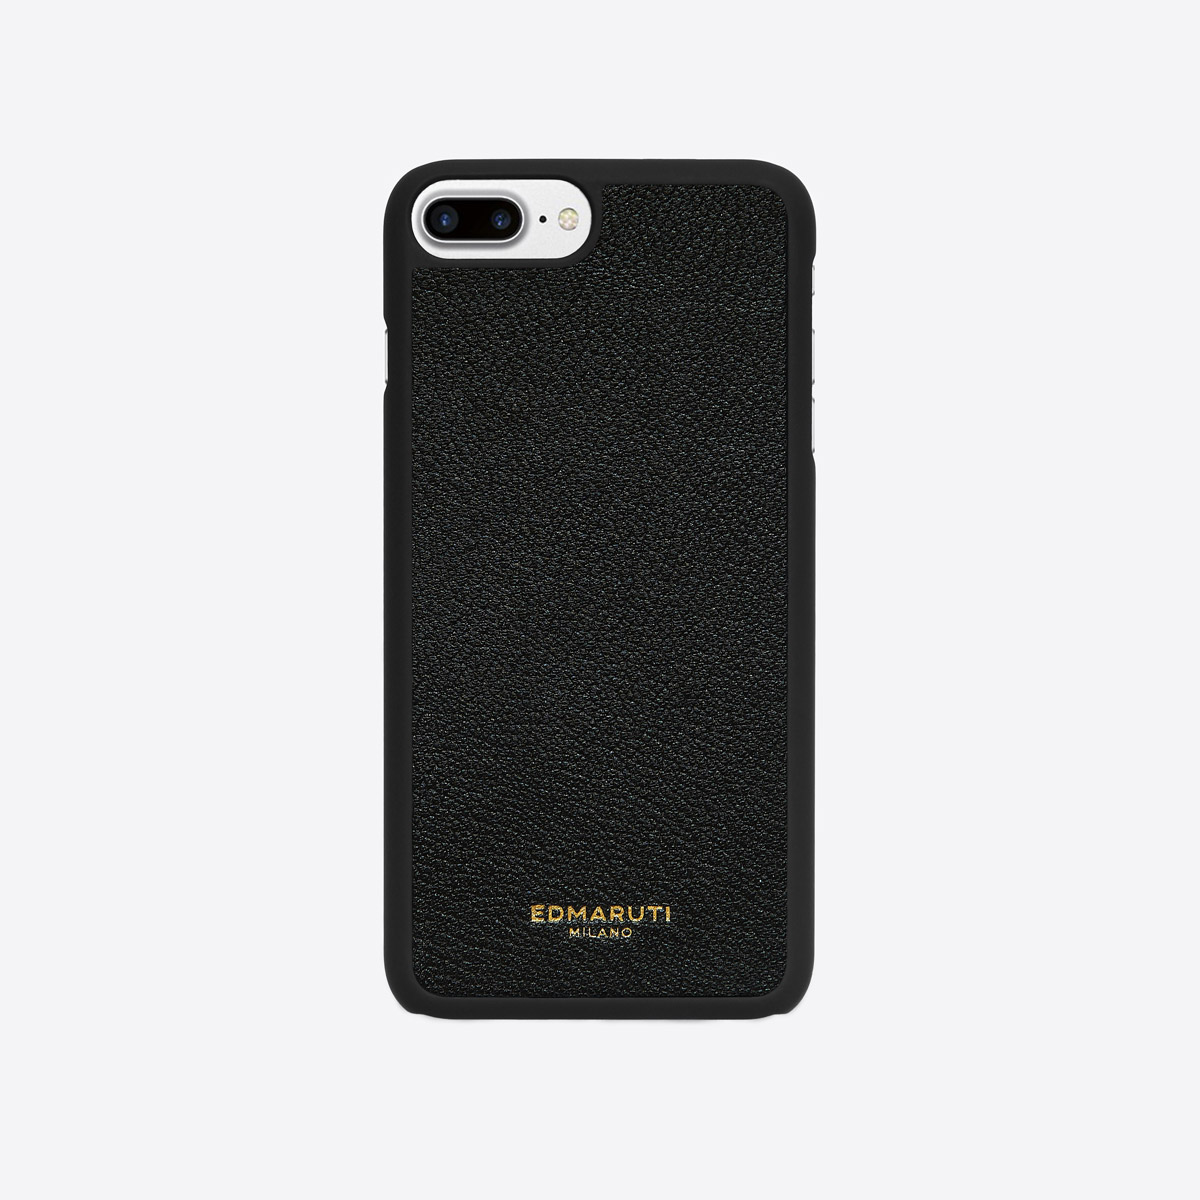 goat case iphone 7